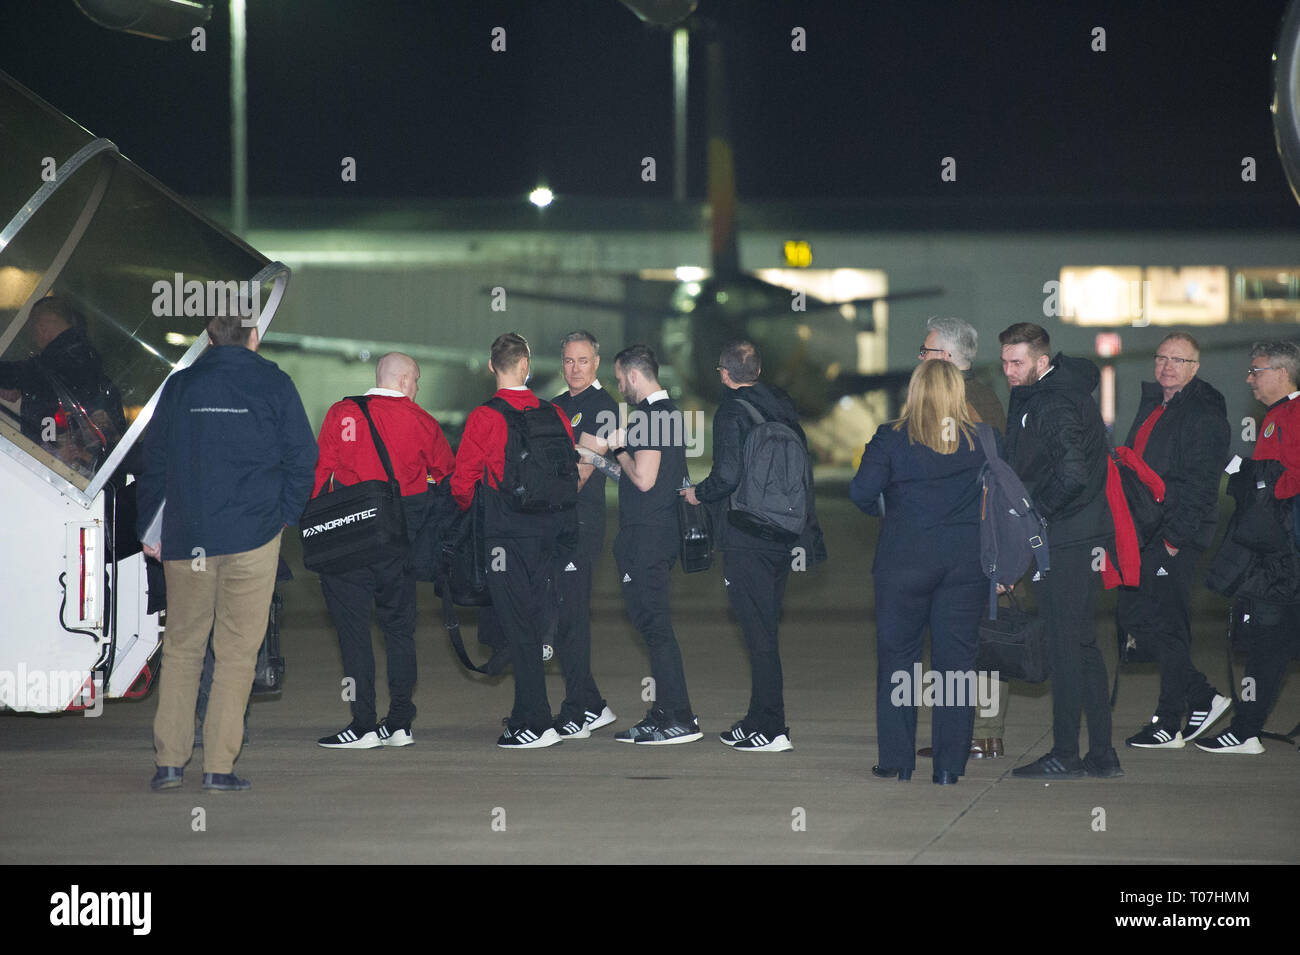 Glasgow, UK. 18 March 2019. Scottish Football Coach, James McFadden (7th from right) and Manager, Alex McLeish (2nd from right) and the Scotland Football Team seen boarding their luxury jetliner private aircraft in the early hours seen  at Glasgow Airport moments before departing for Kazakhstan to play a game on Wednesday.  The flight was due to take off at 11pm, however due to an unforeseen problem where the pilot had to come out of the flight deck and onto the tarmac and speak with ground crew, the flight eventually took off in the early hours of today. Credit: Colin Fisher/Alamy Live News - Stock Image